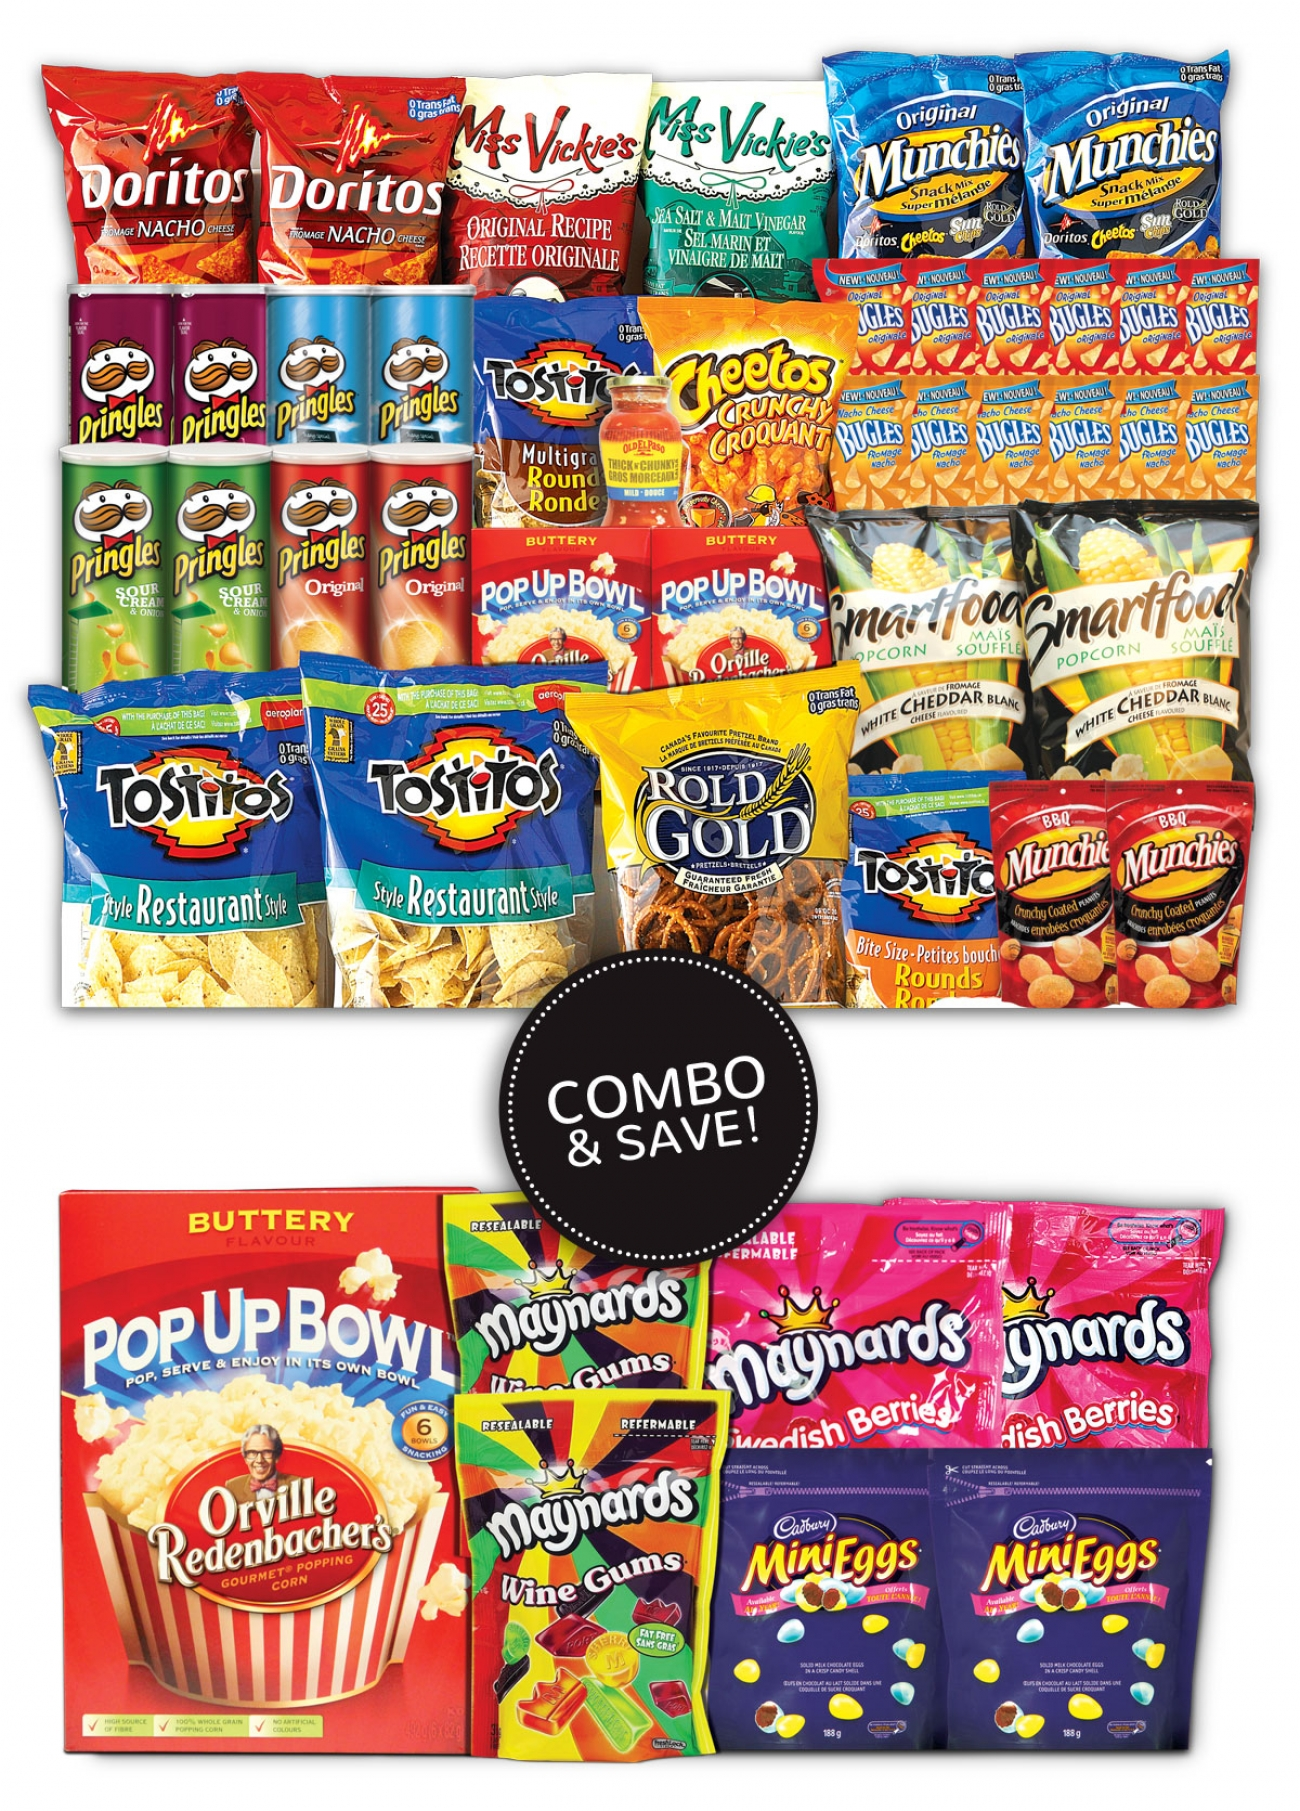 Snack Attack with Extra Value Hamper